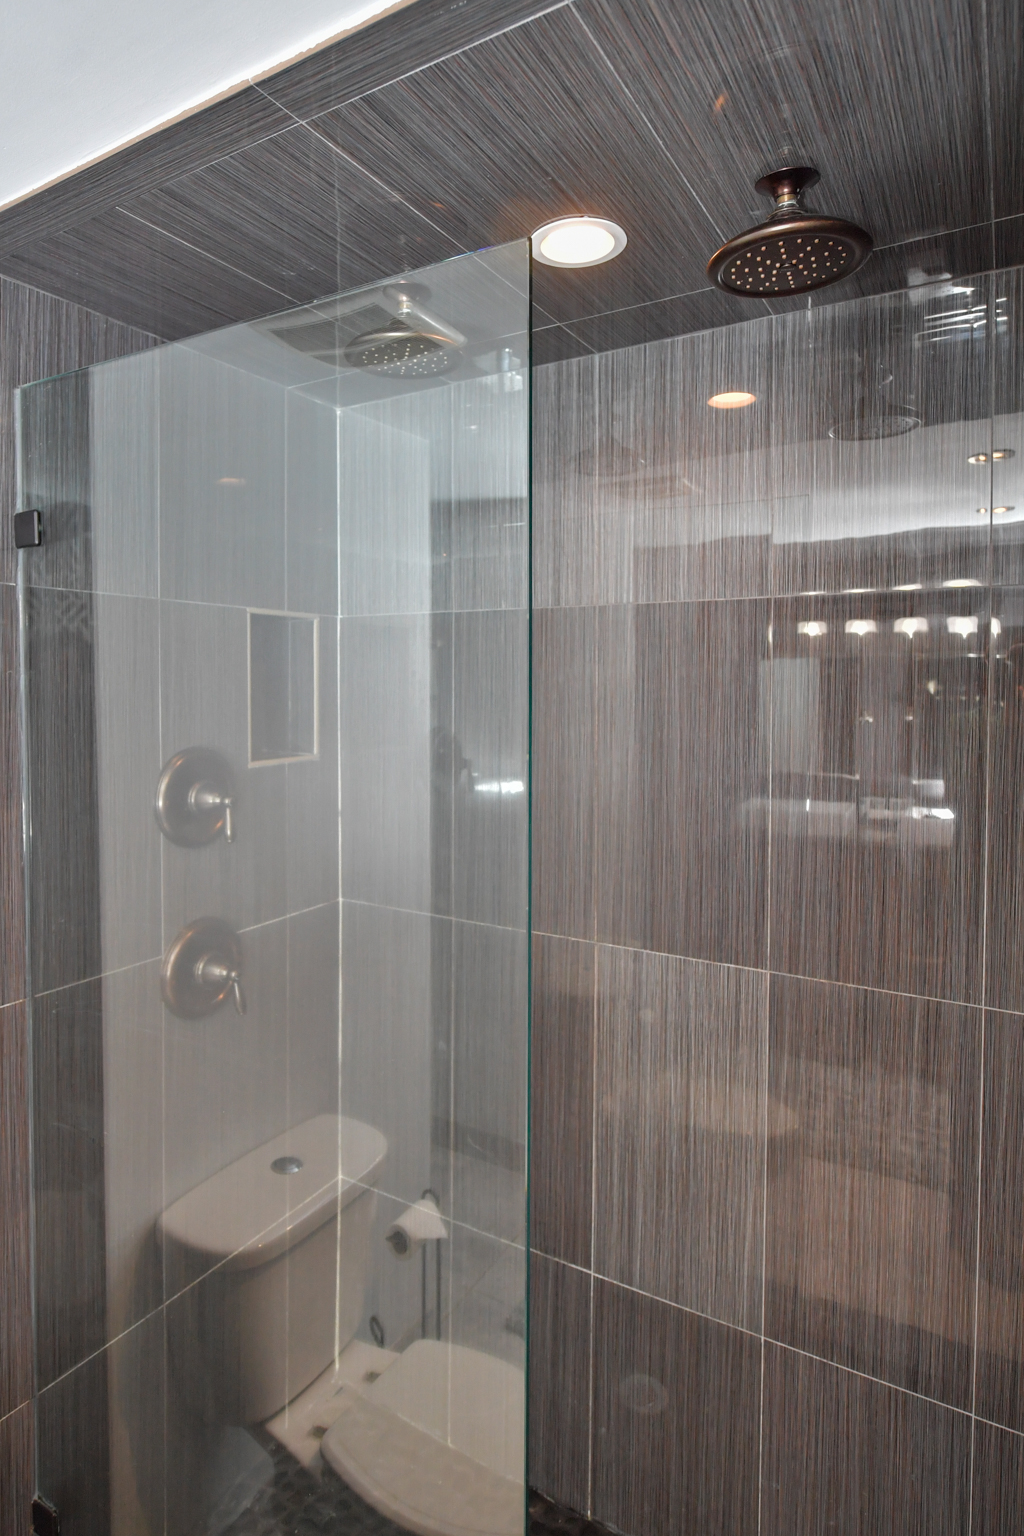 Master shower with double rain shower head